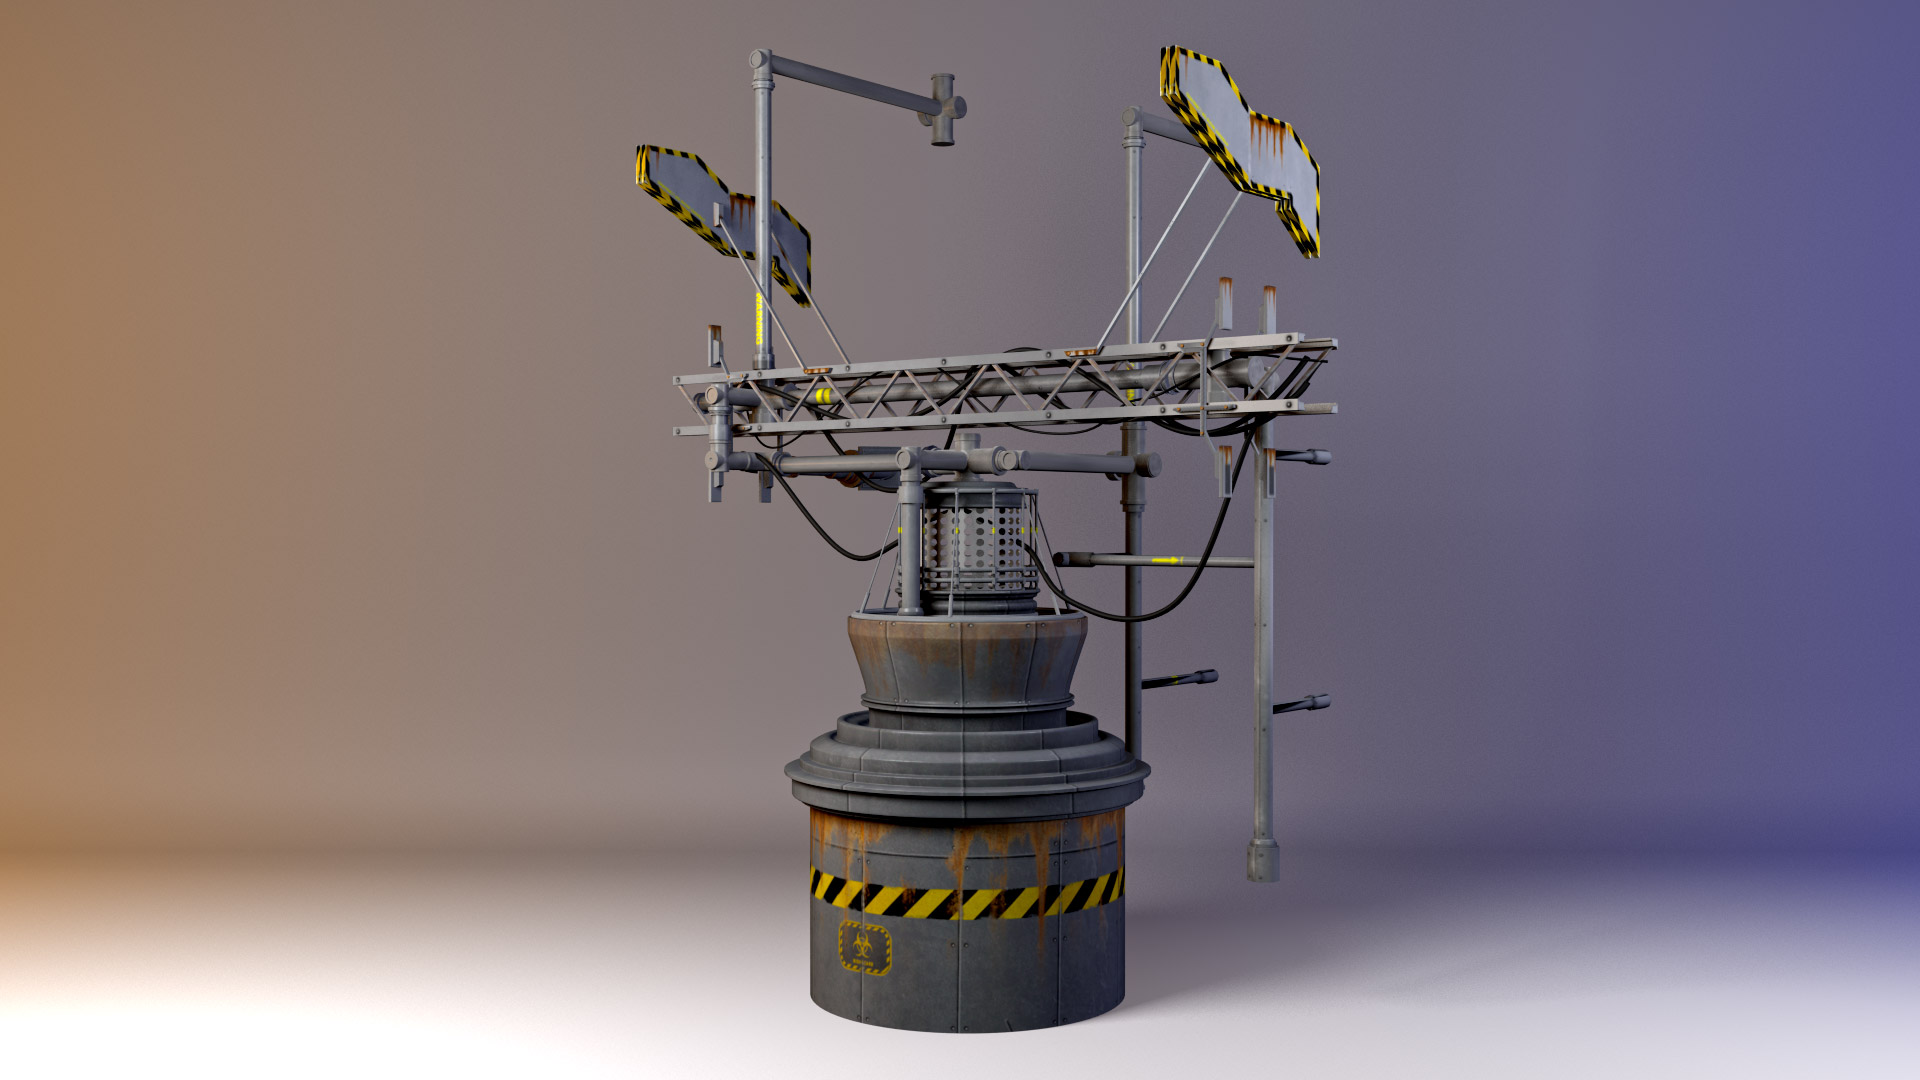 Post-Processing Prop. Modeled in Maya. Rendered in Mental Ray.